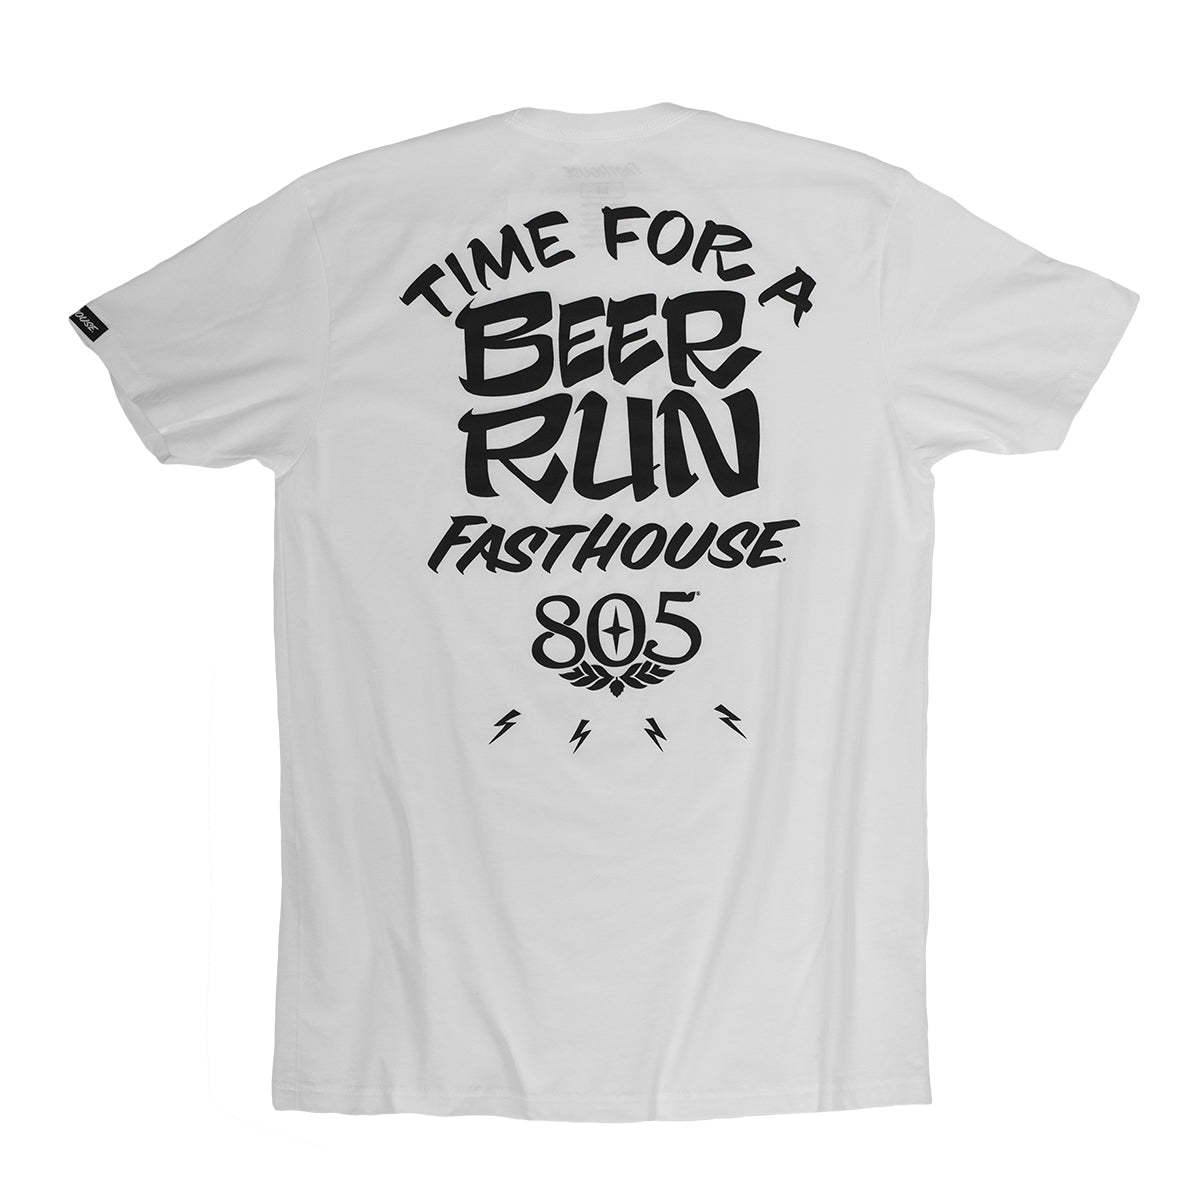 805 Beer Run Tee - White